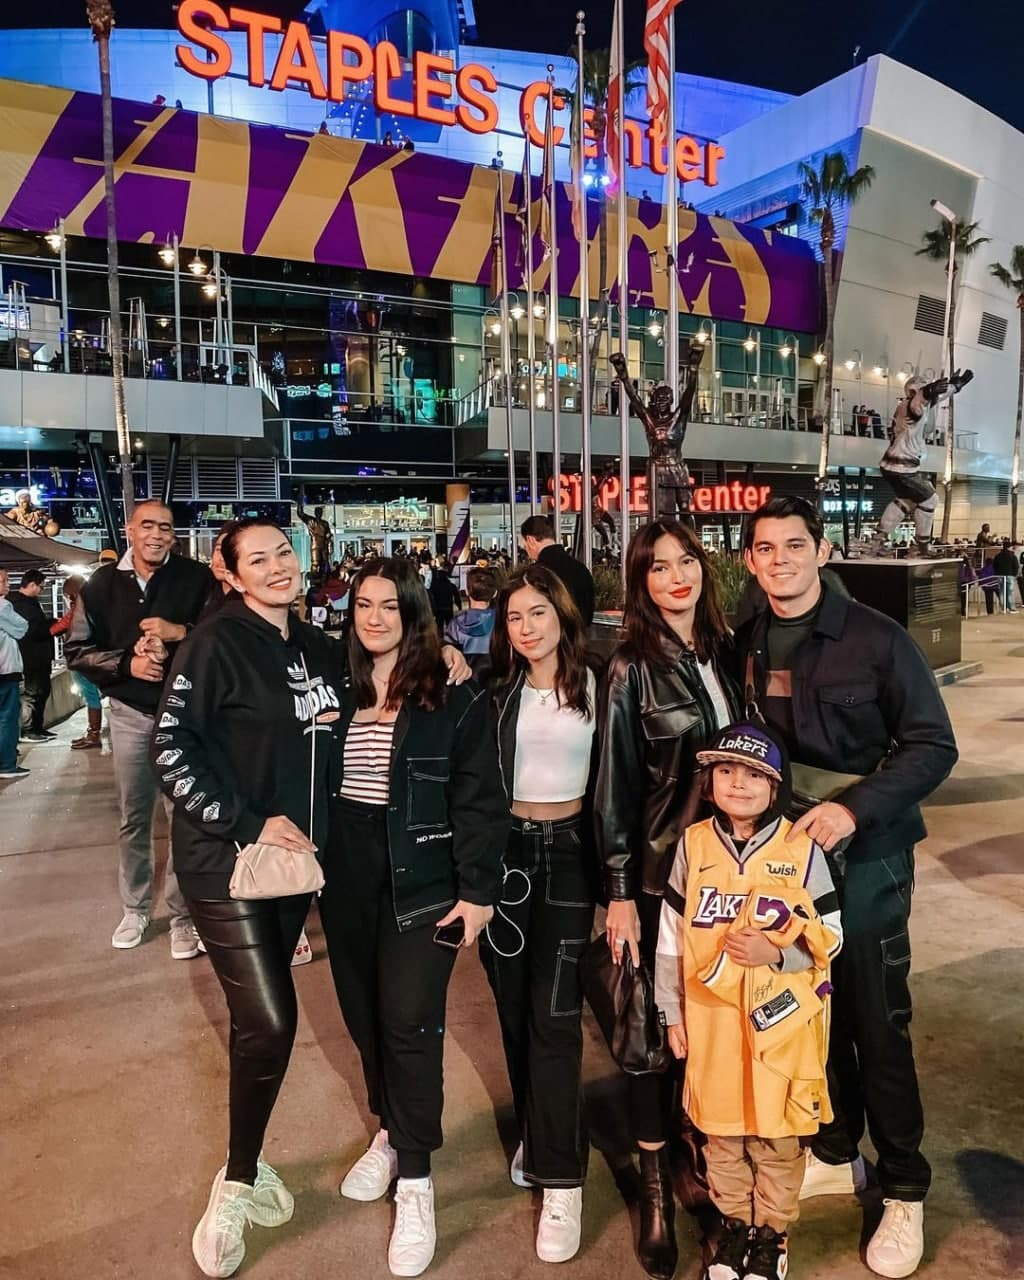 Ruffa and family at the Staples Center